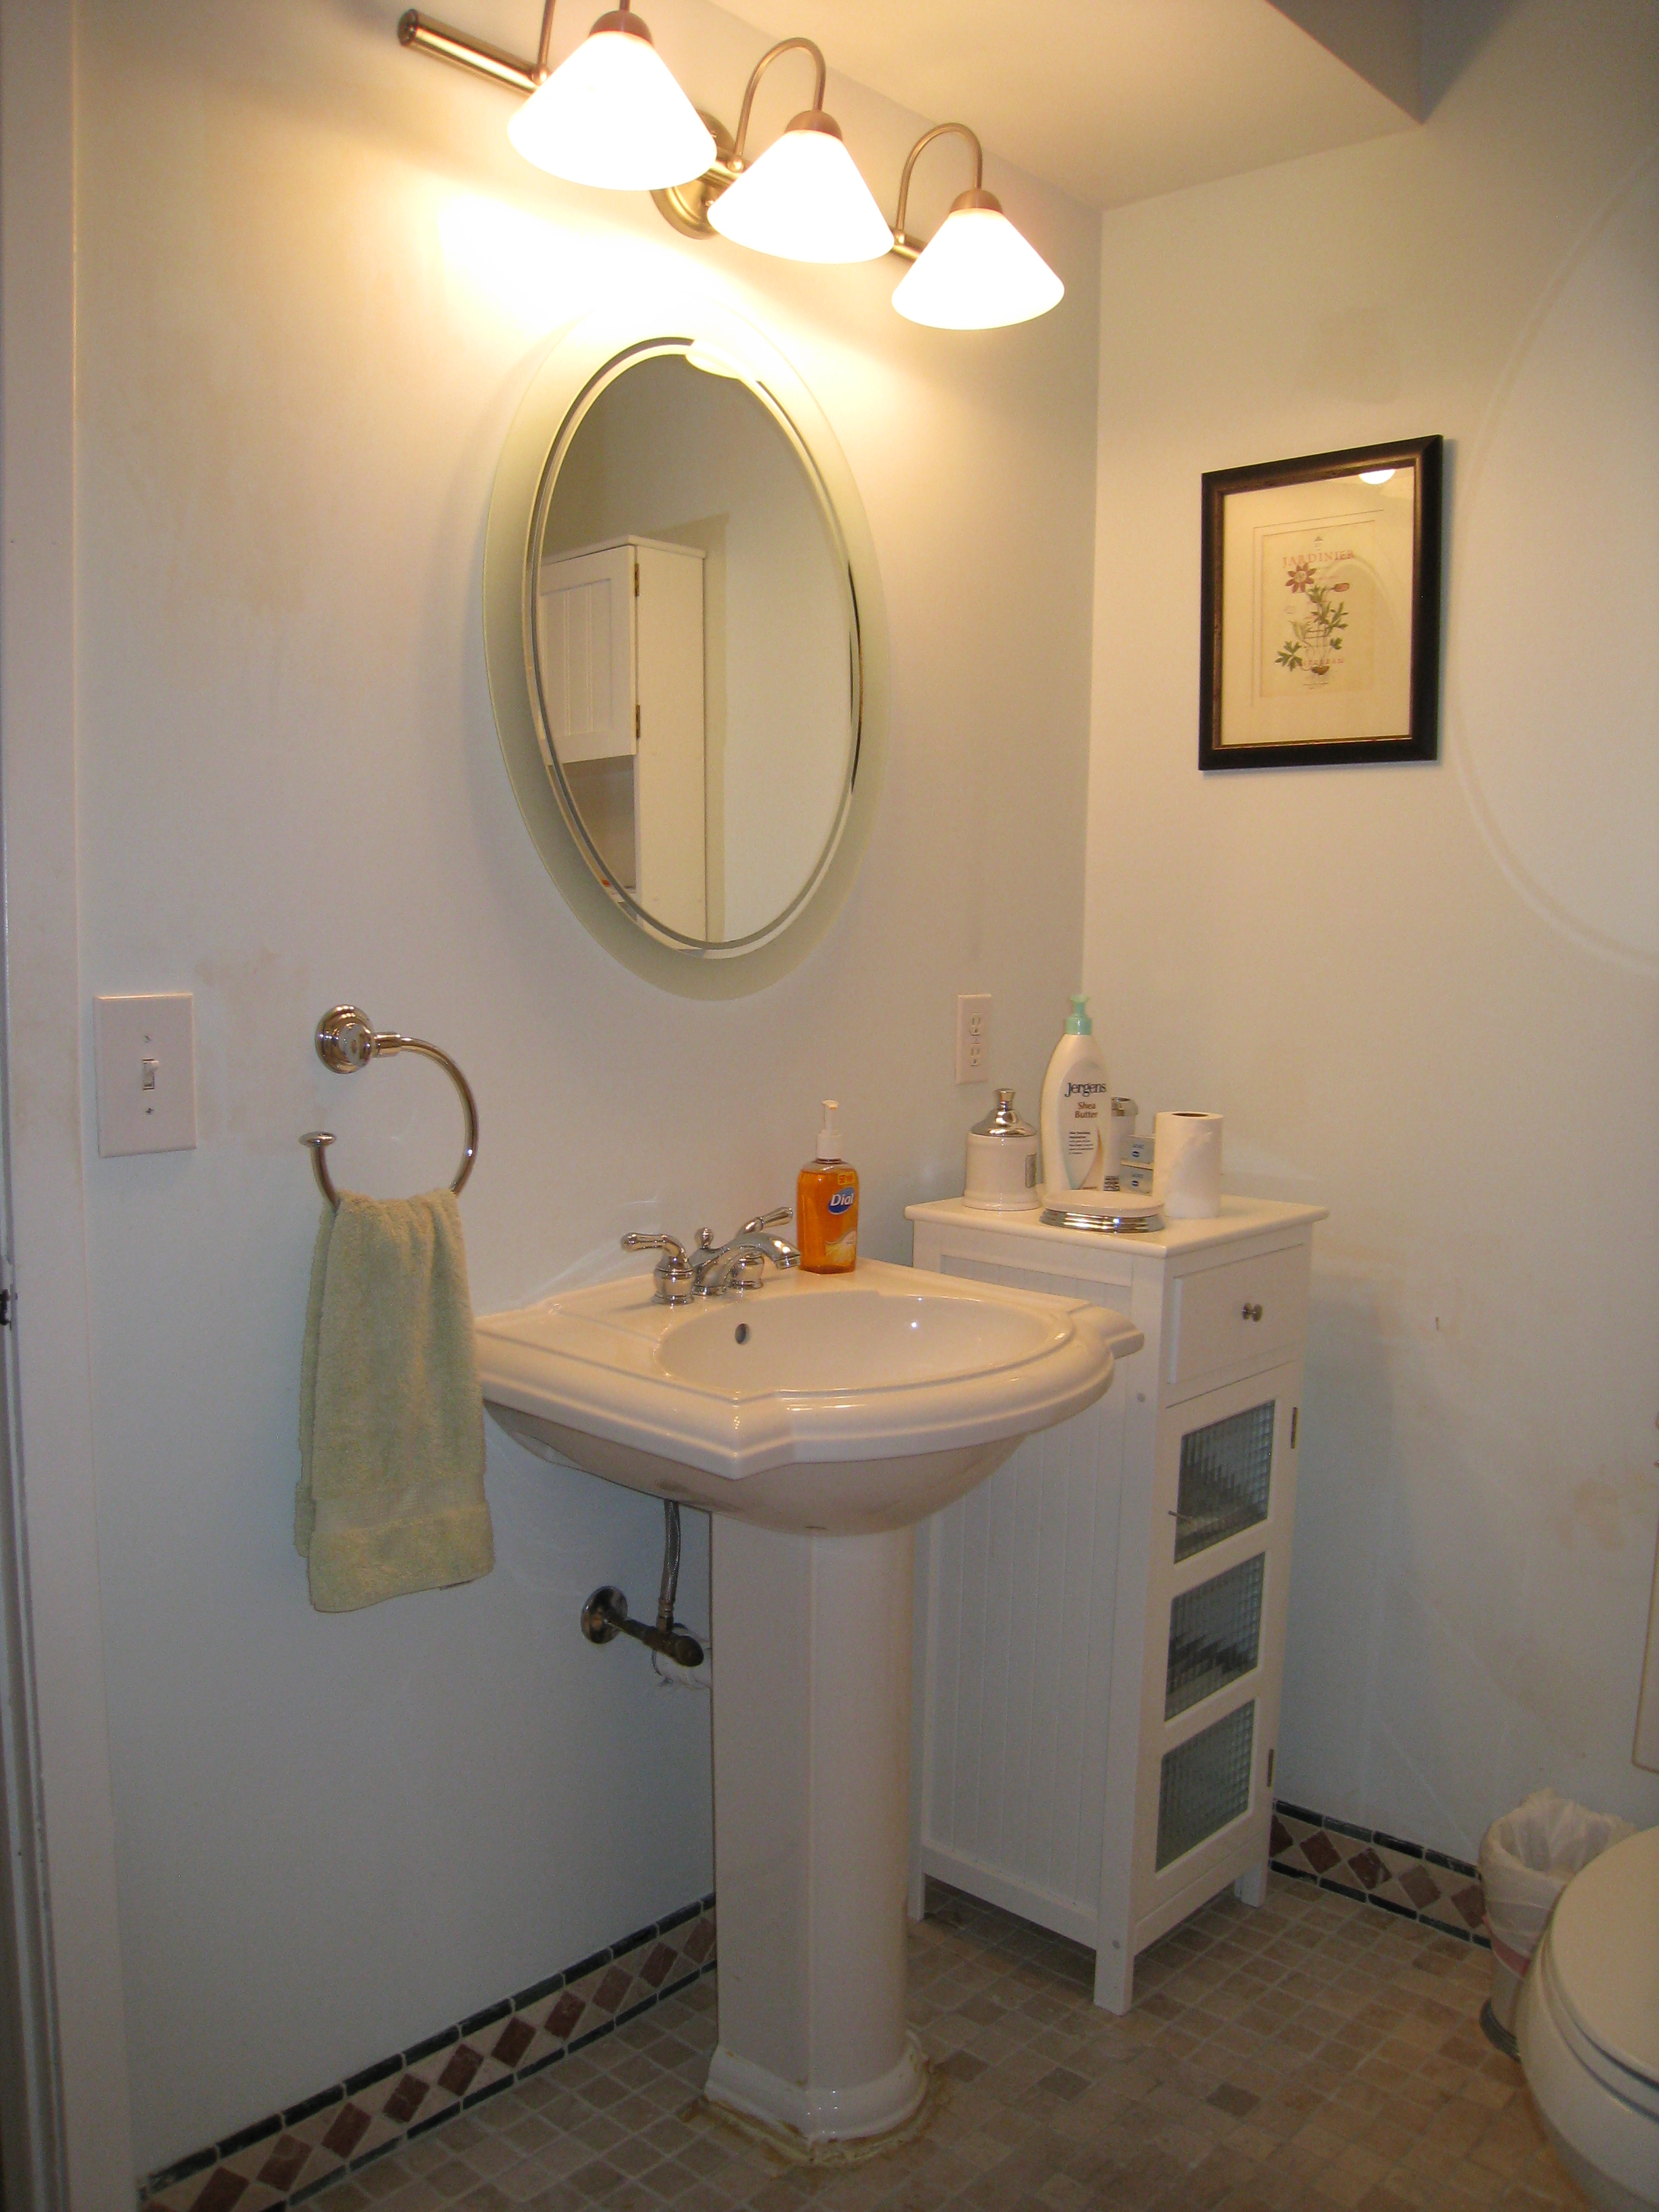 Powder Room With Pedestal Sink Decorating Ideas from atwellstagedhome.com